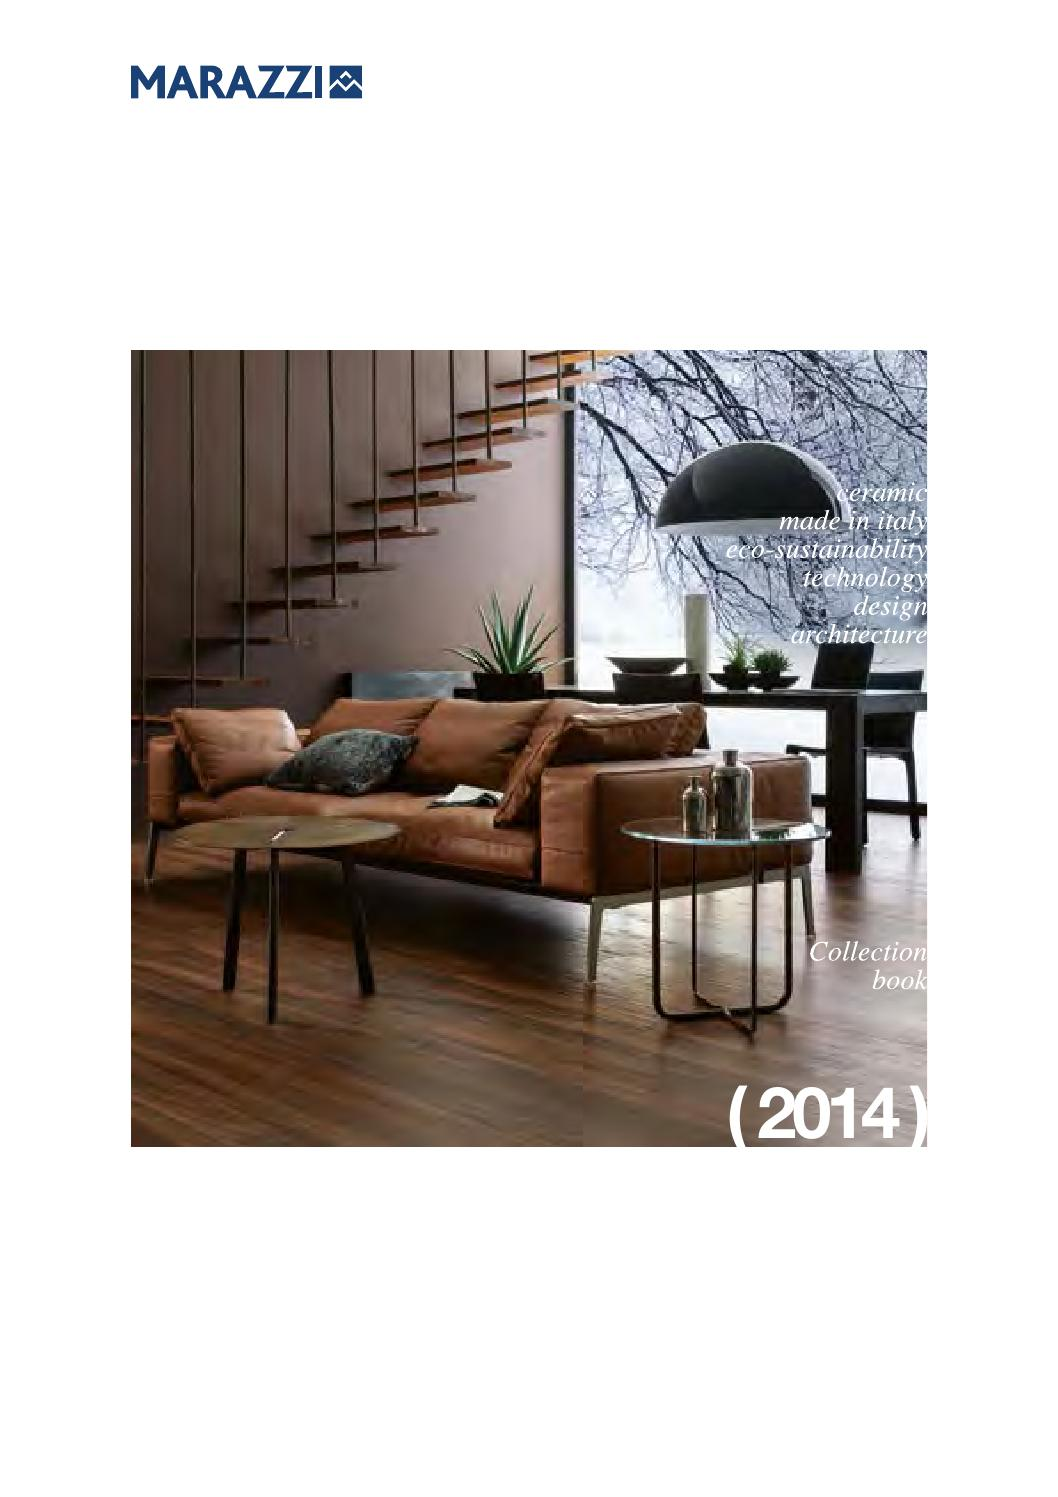 Marazzi Italy Collection Book 2014 By Iris Issuu - Piastrelle Marazzi Serie Blend